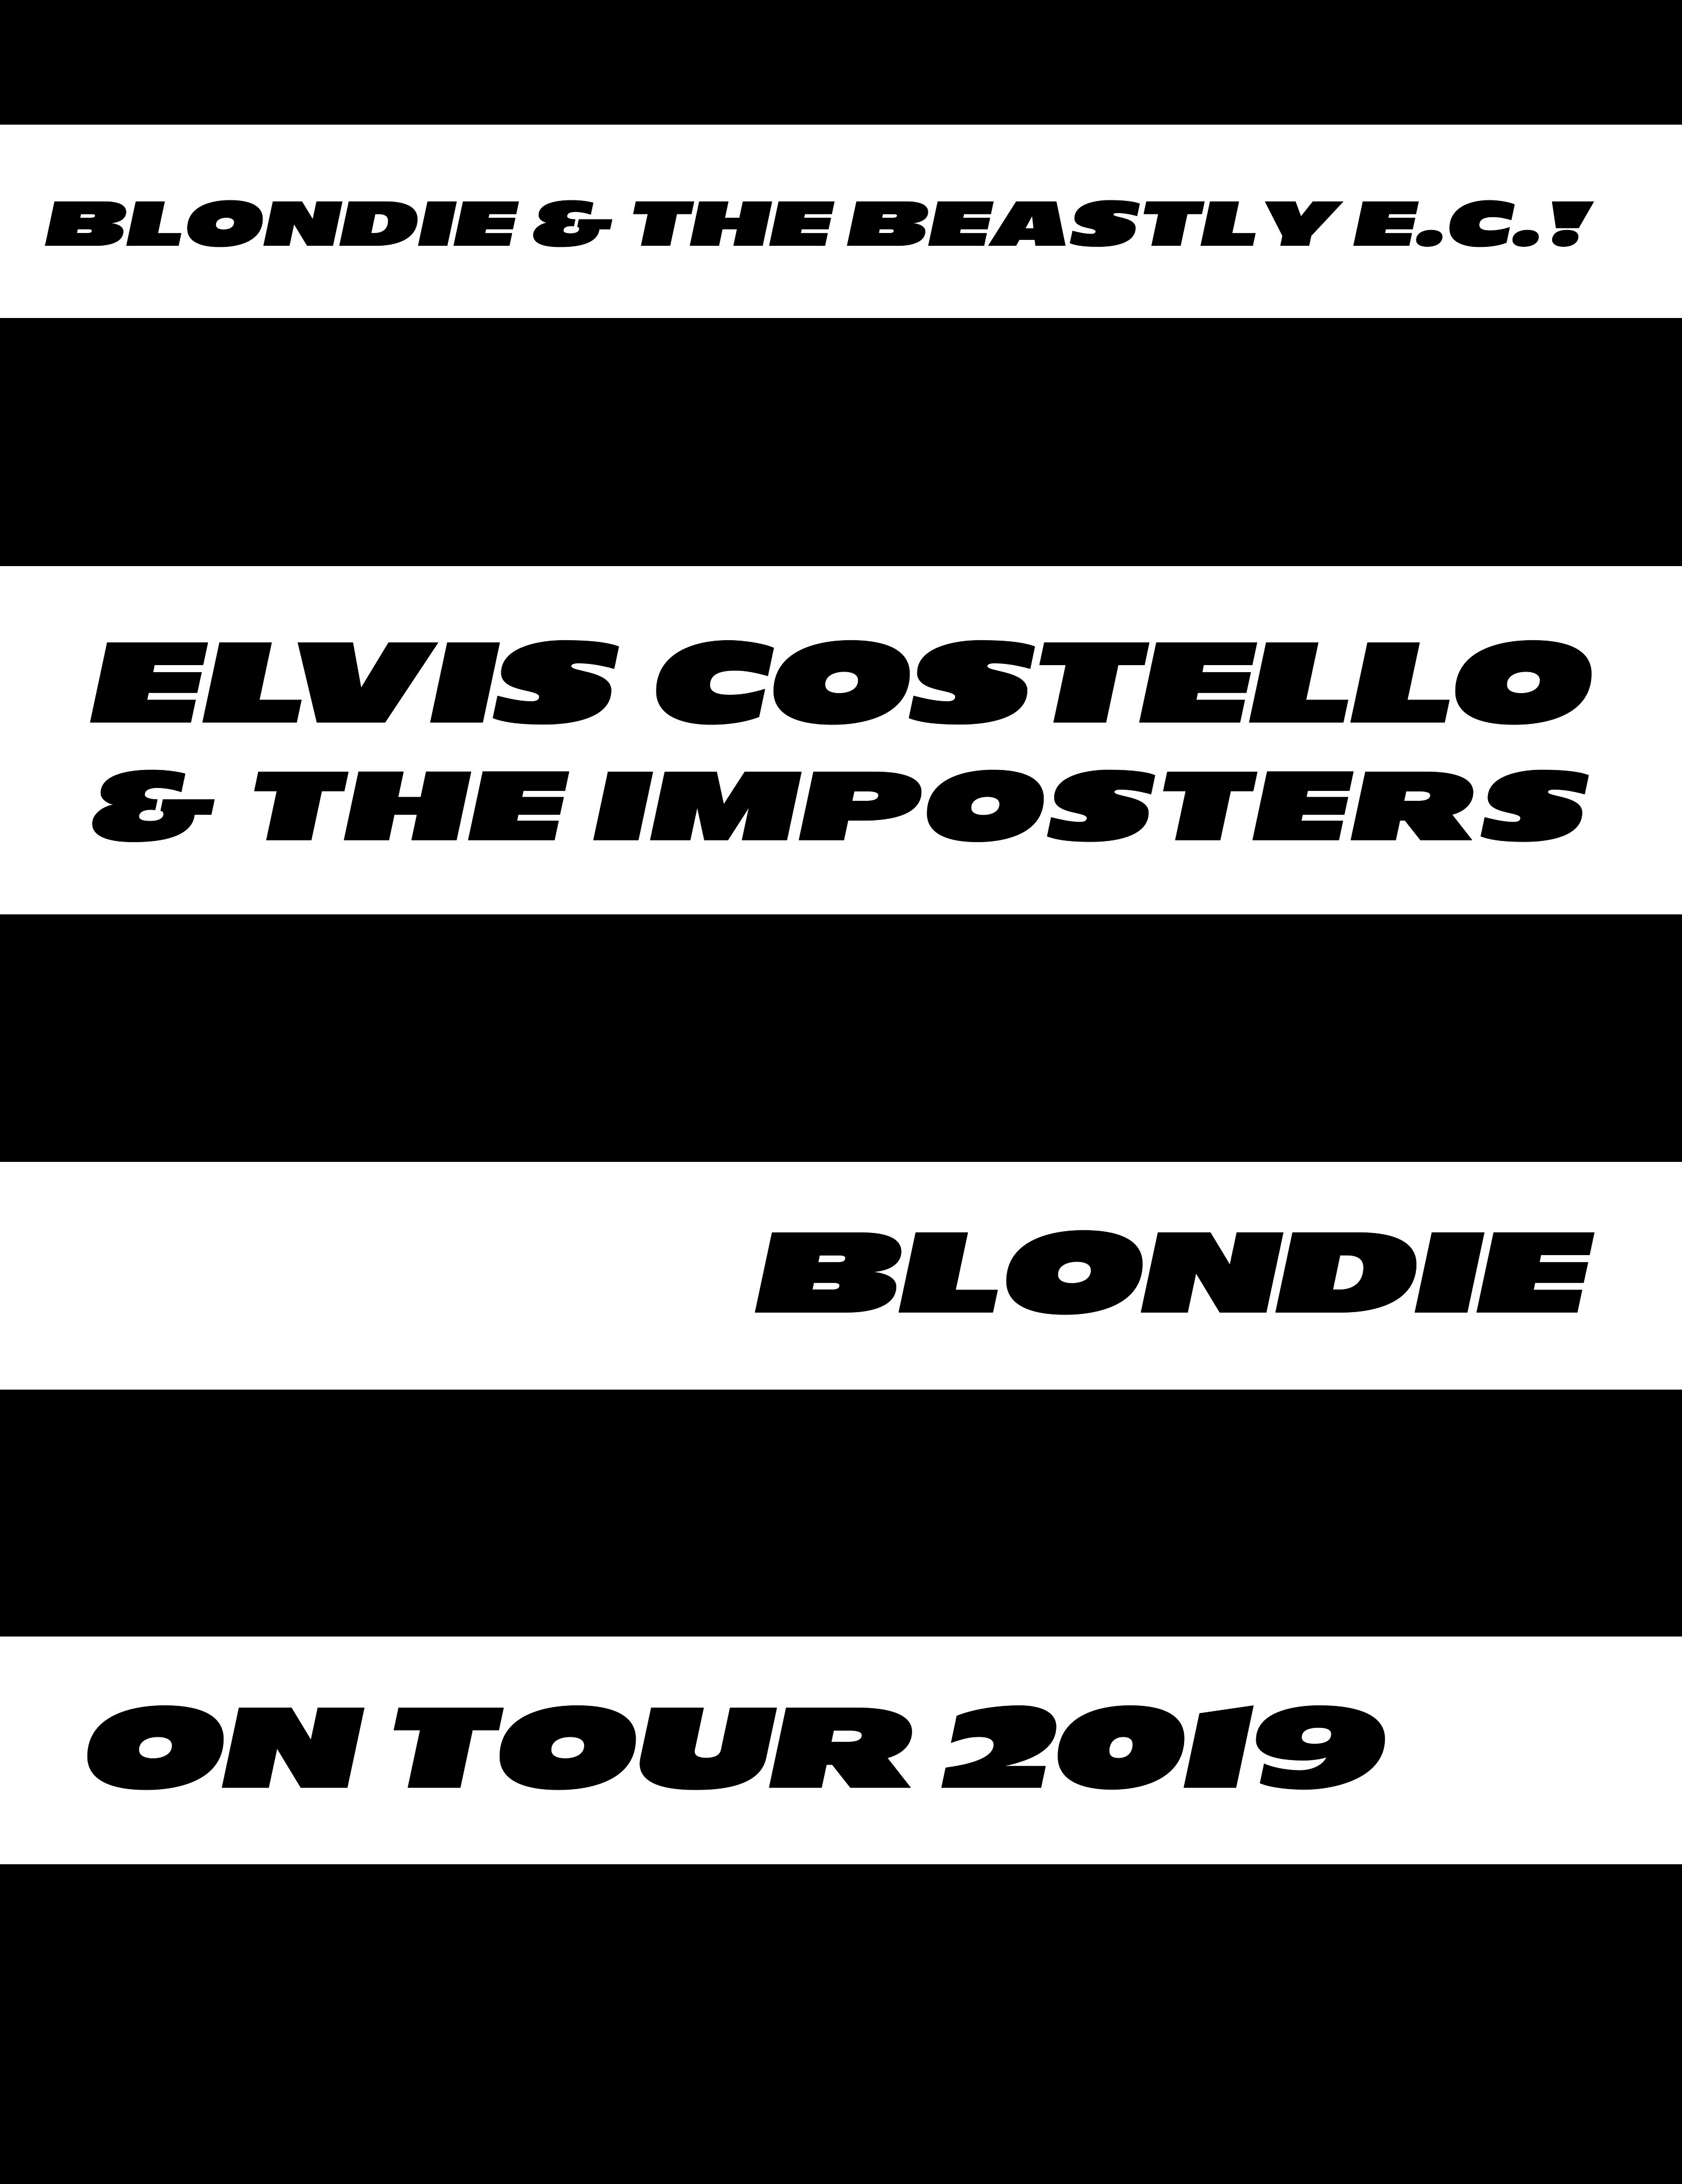 Ticket Contest Elvis Costello The Imposters And Blondie At